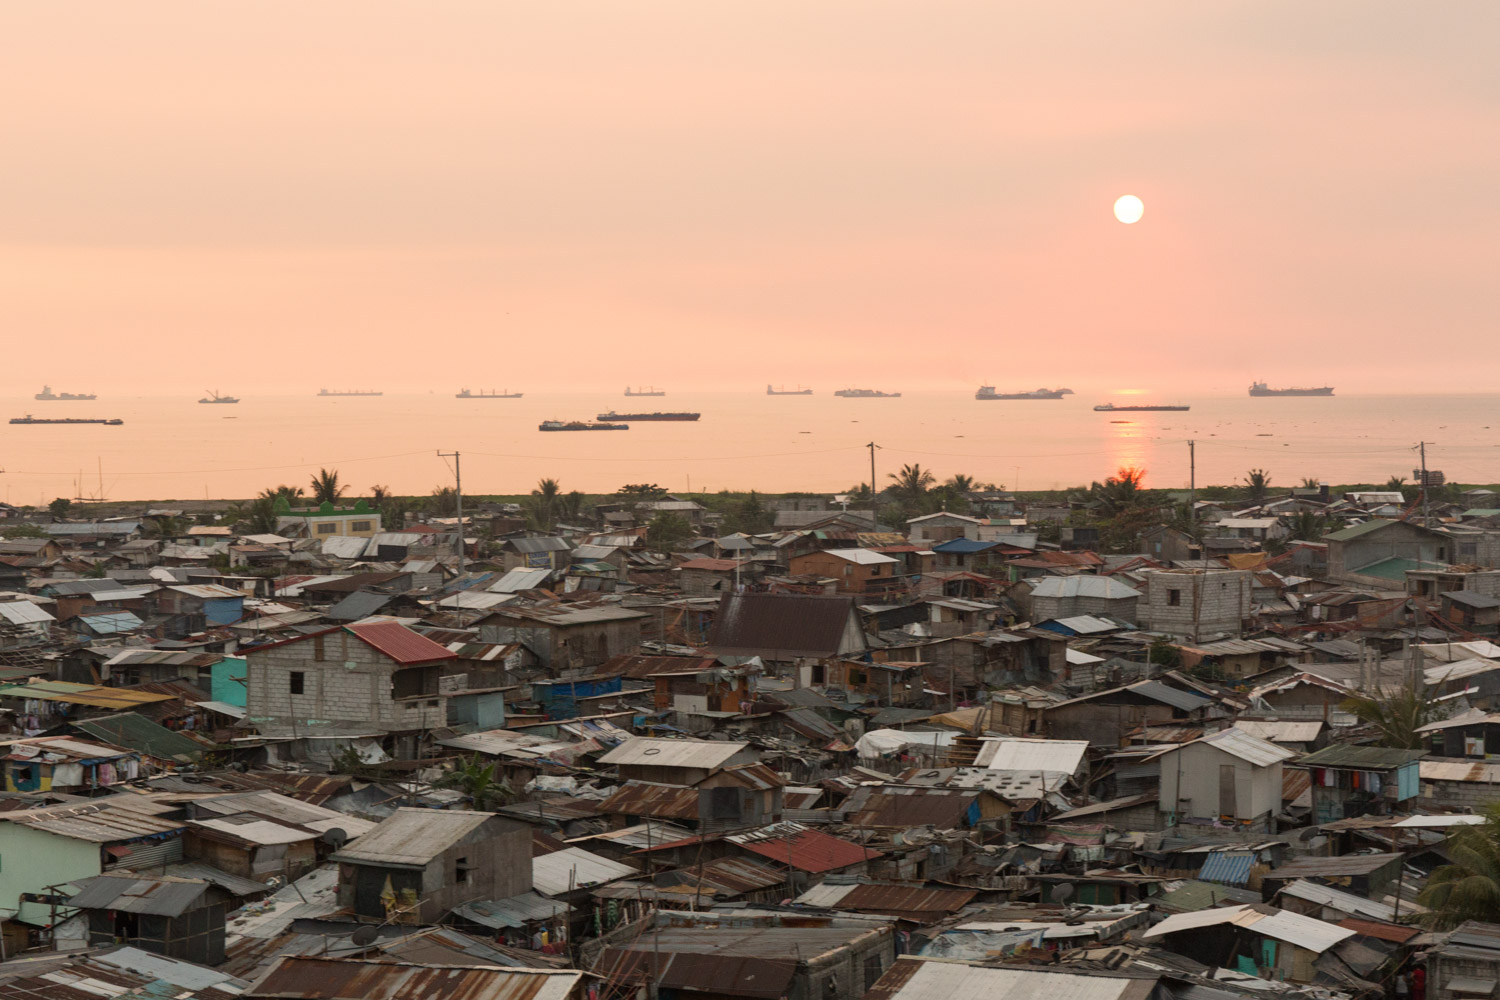 Baseco is an informal neighborhood of Manila located between the international port and the Pasig river. More than 50 000 people are living there in very precarious conditions.  Sunset on Baseco and Manila bay. Many boats are waiting to enter to the port. Manila, Philippines - 13/01/2016.